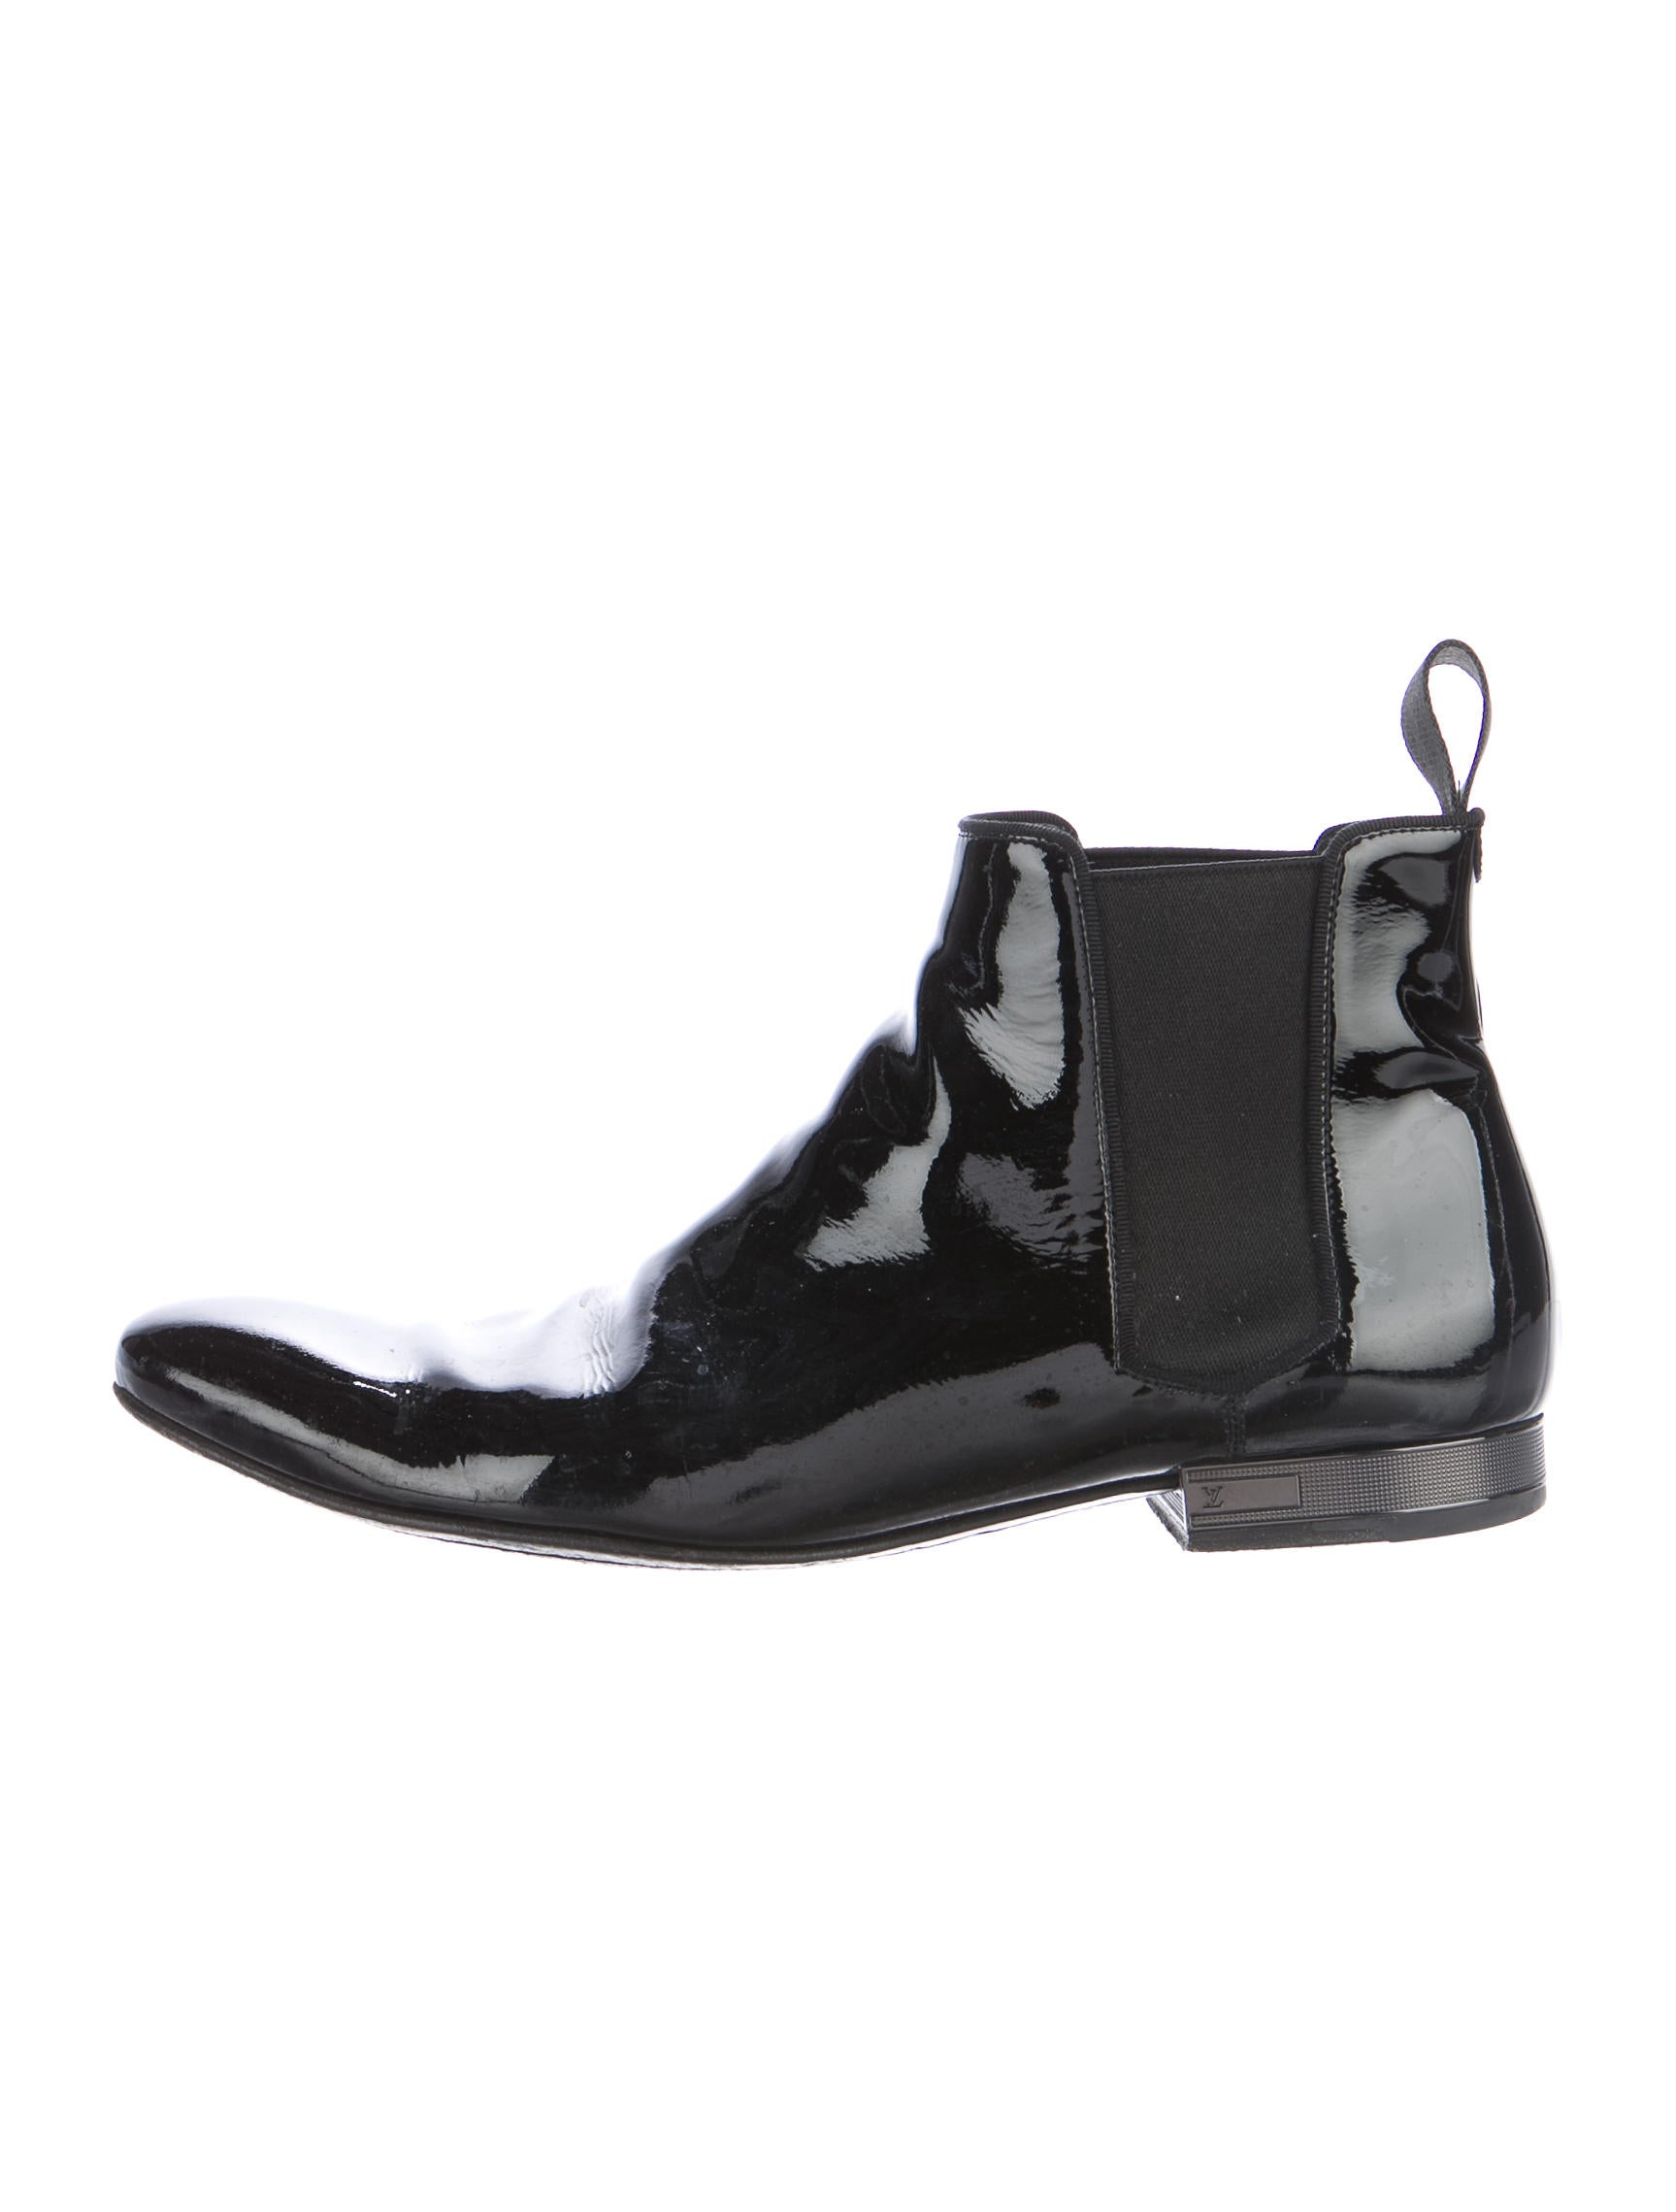 louis vuitton patent leather chelsea boots shoes